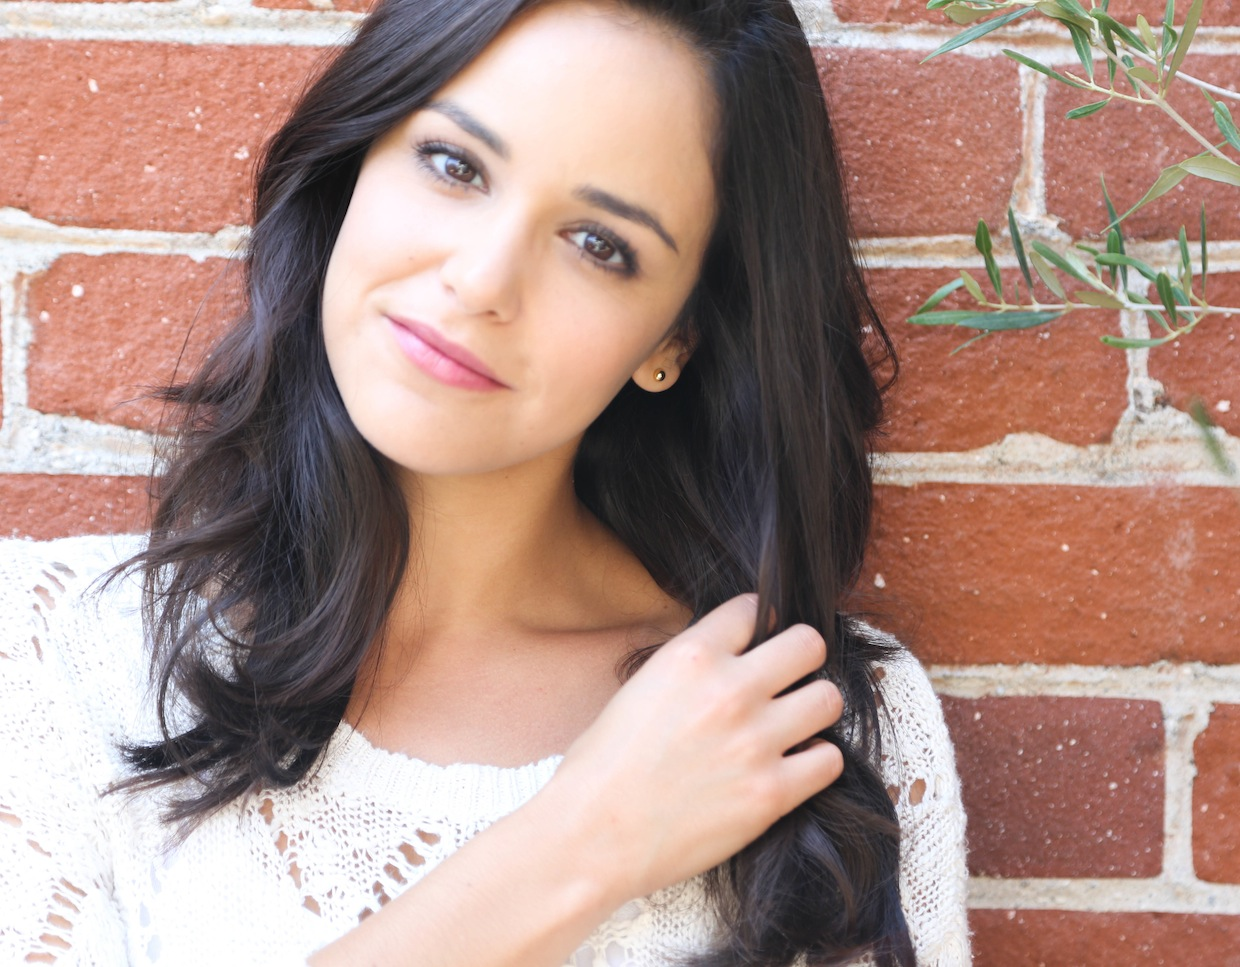 melissa fumero one life to live